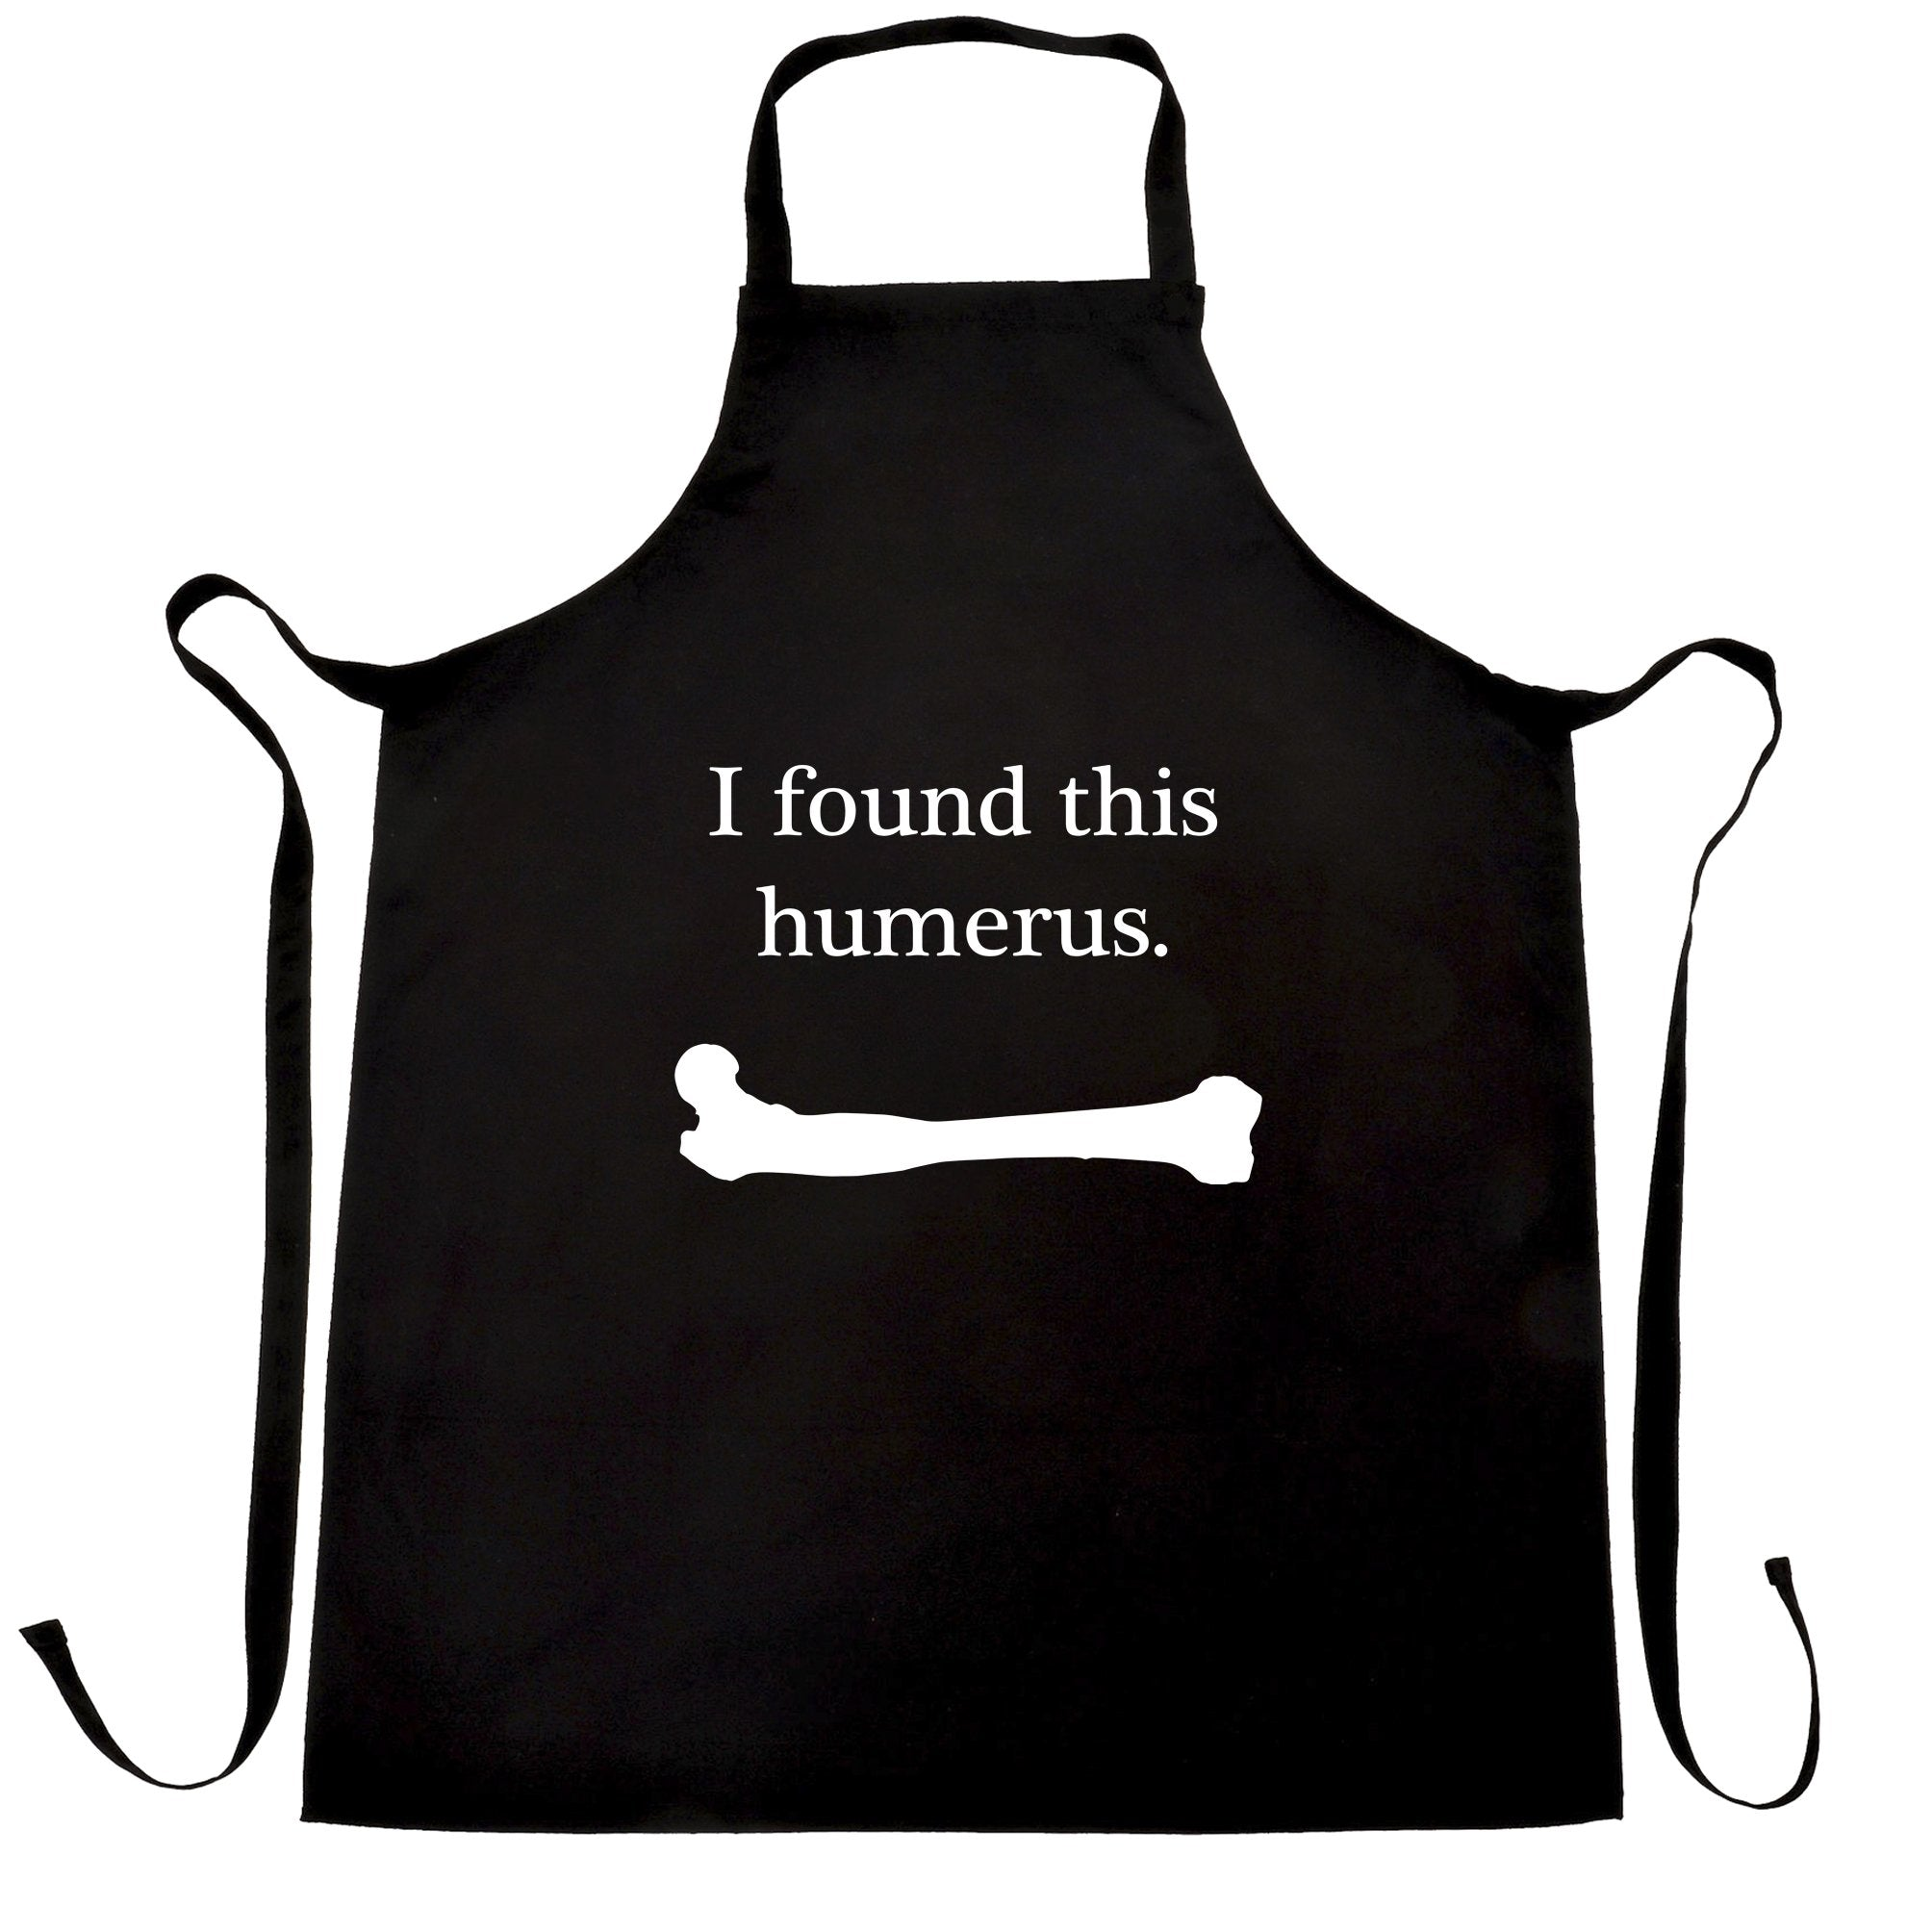 Novelty Chef's Apron I Found This Humerus Humourous Pun